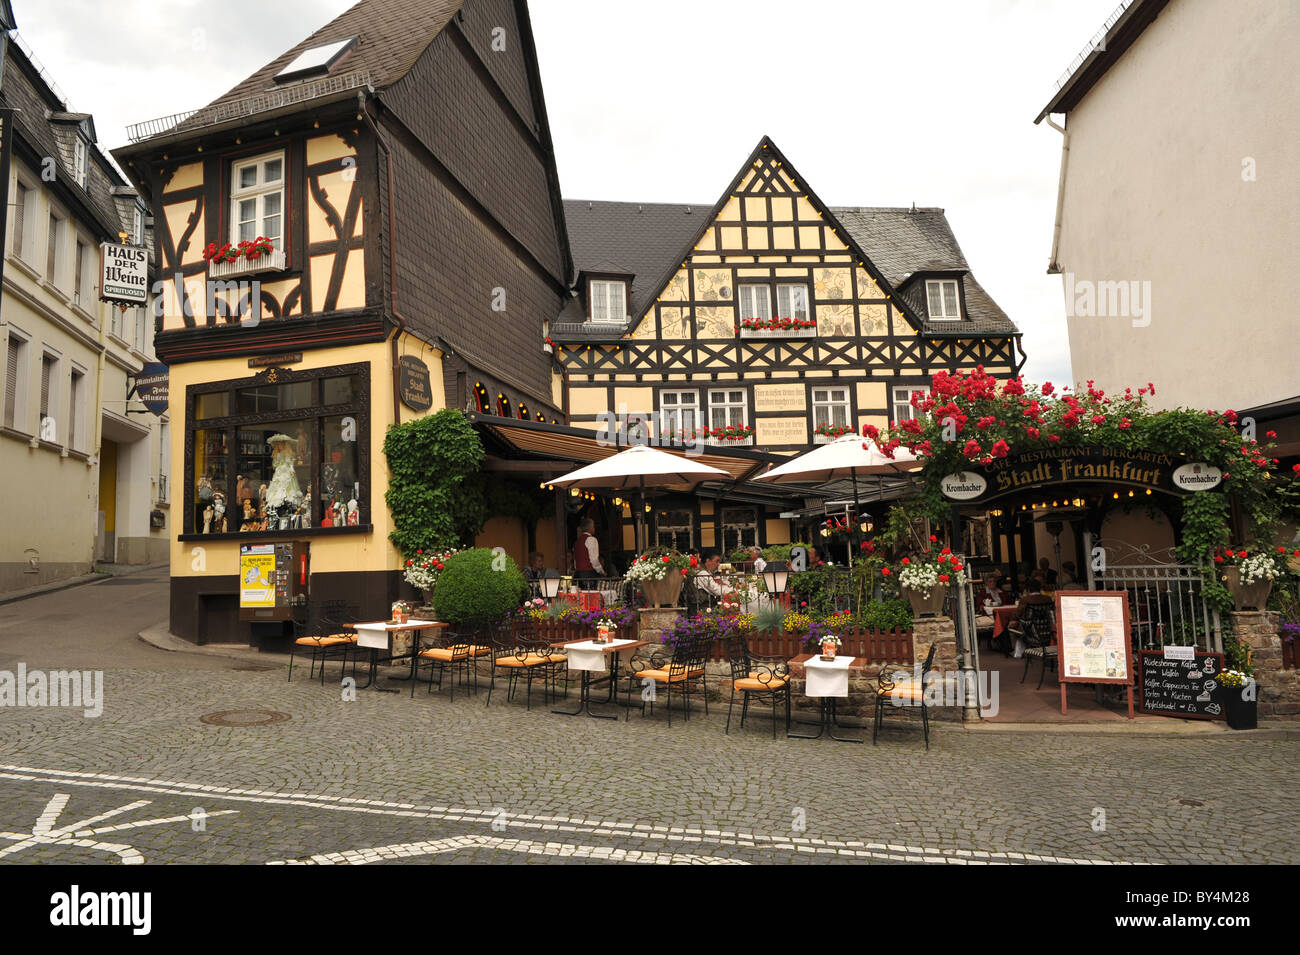 Tavern Deutsch